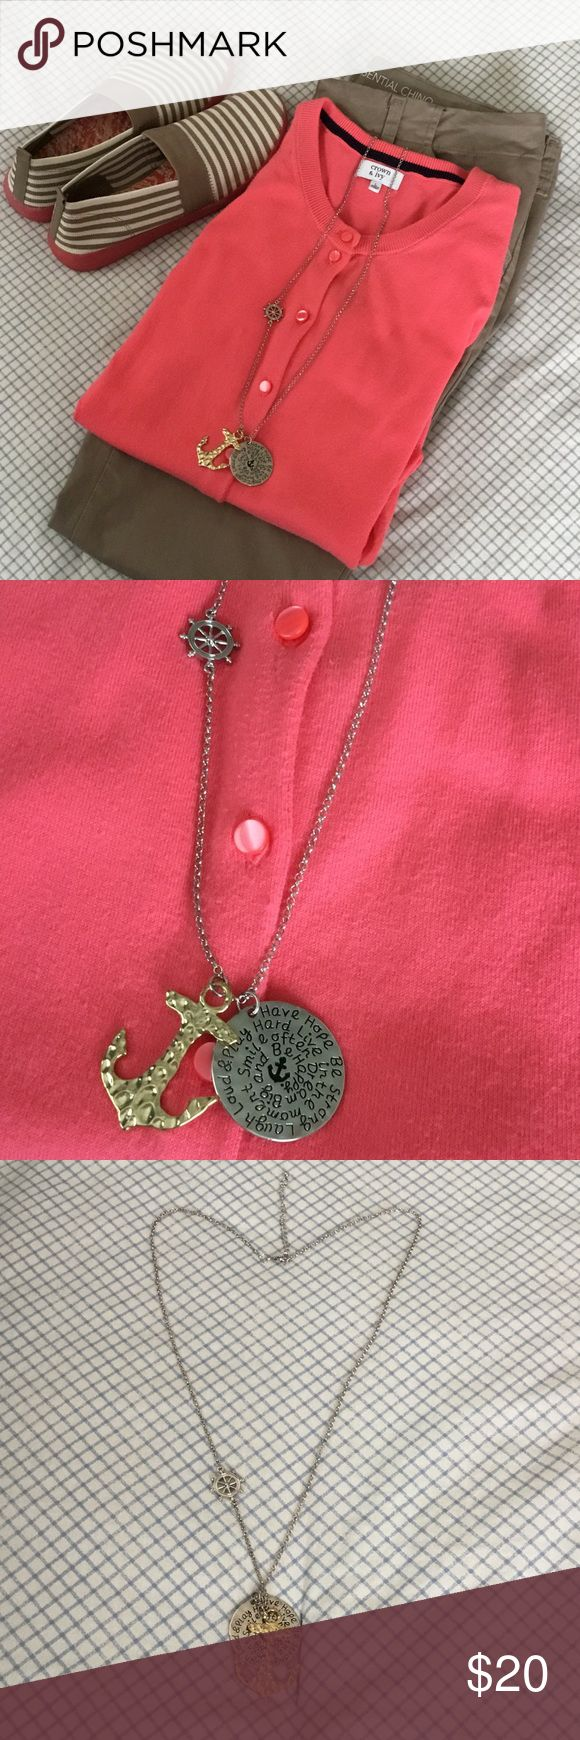 New Listing 🛳Merle Norman nautical necklace. Let's go sailing.  Cruise anyone?  Necklace is so cute and is fairly new.  Used on a cruise one time.  Excellent condition.  Length is 16 1/2 inches long with a 3 inch clasp.  Love this necklace❤️ Words of encouragement printed on silver round part. Merle Norman Jewelry Necklaces